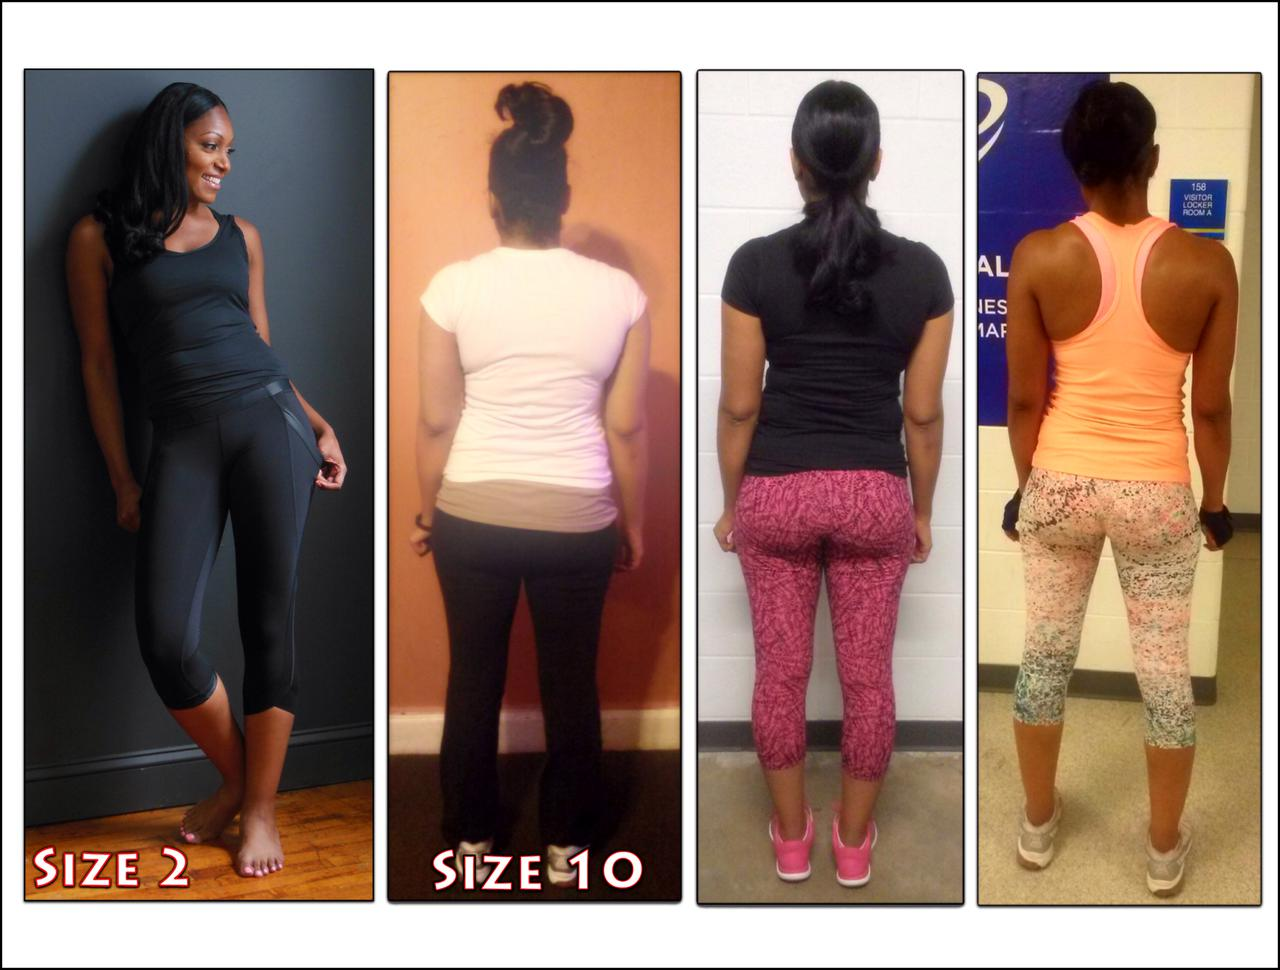 In-home personal trainer in Baltimore, MD.